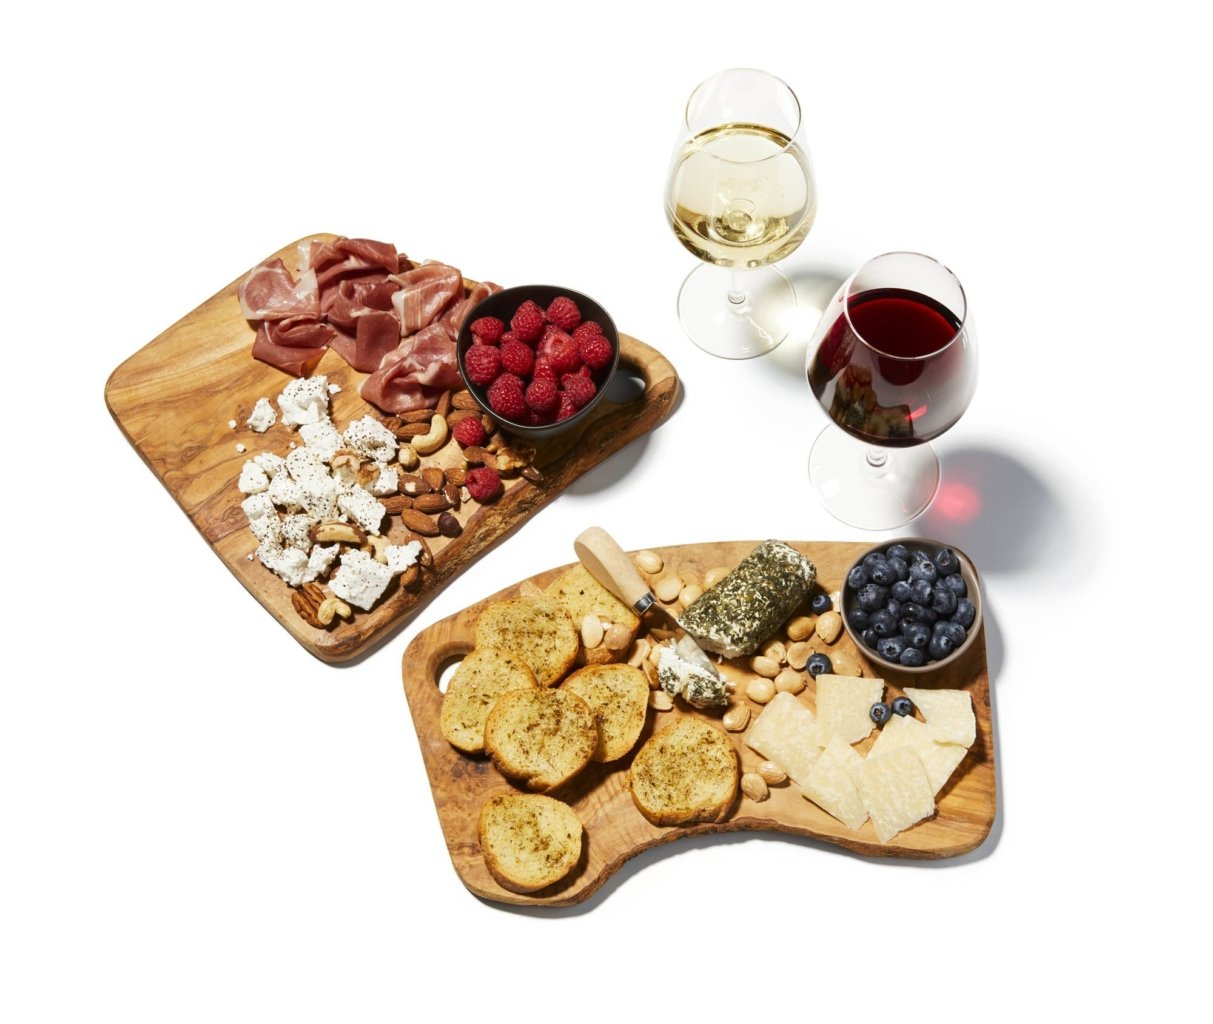 charcuterie board with white wine and red wine